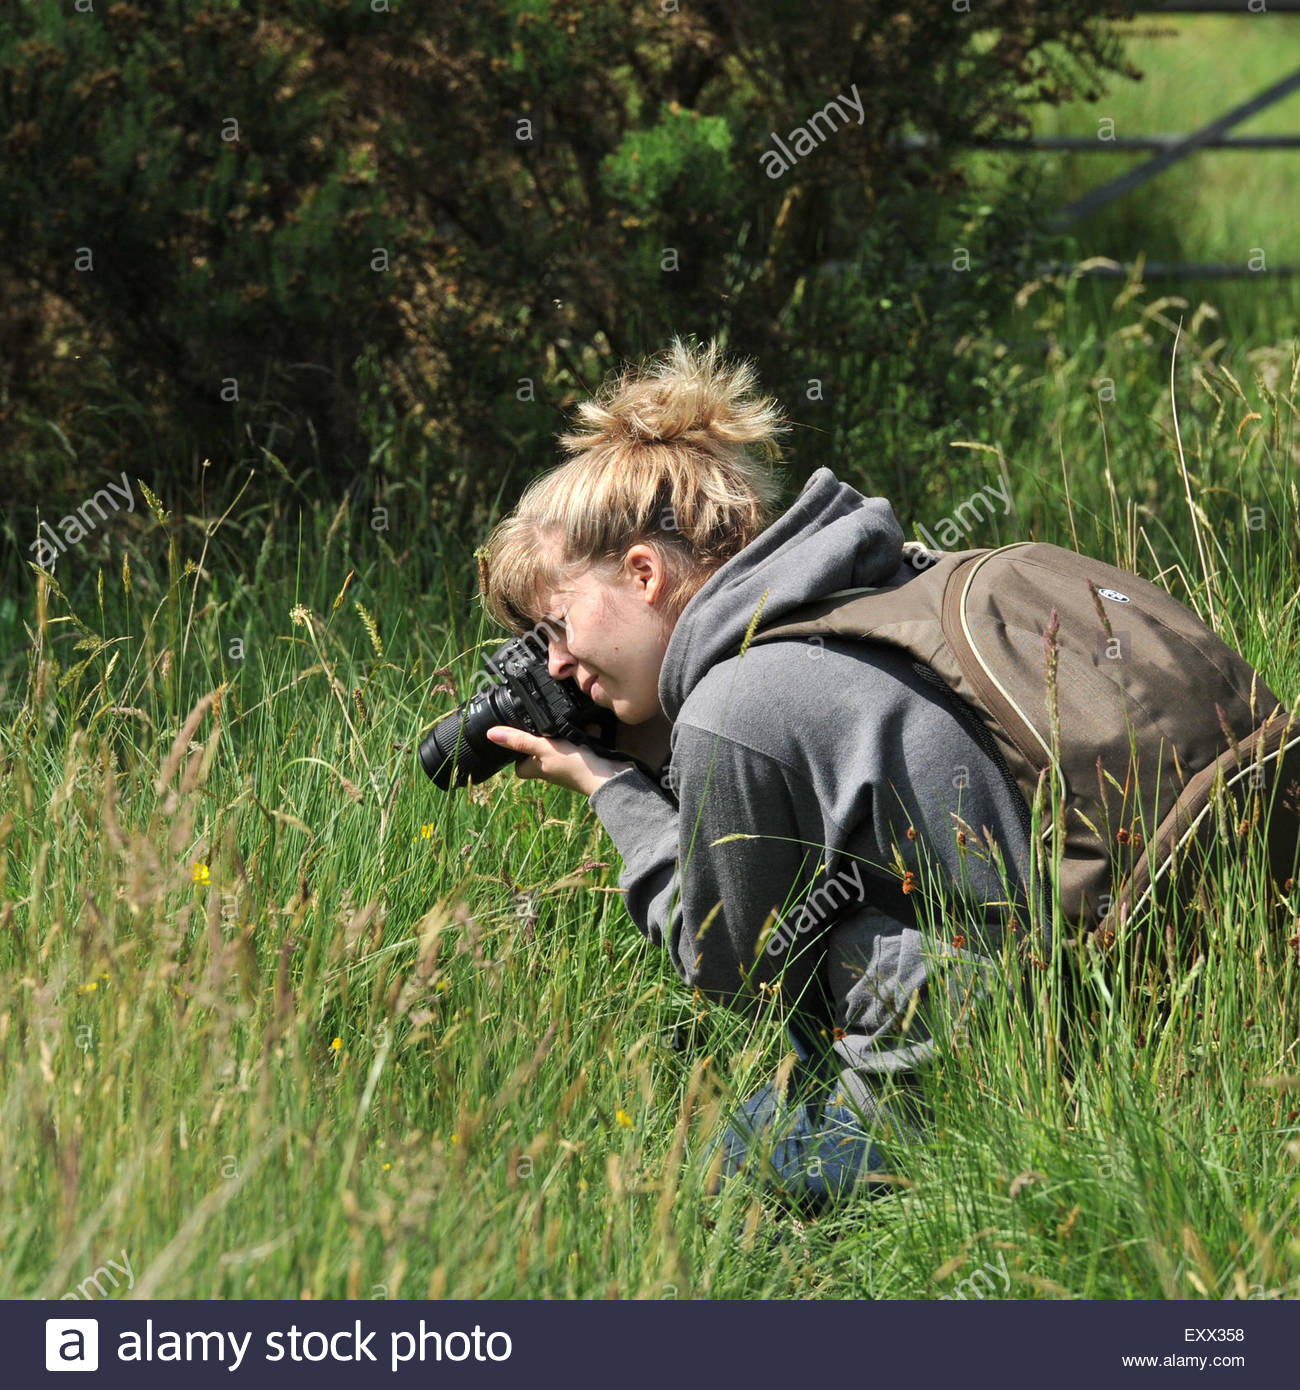 girl-photographing-nature-EXX358